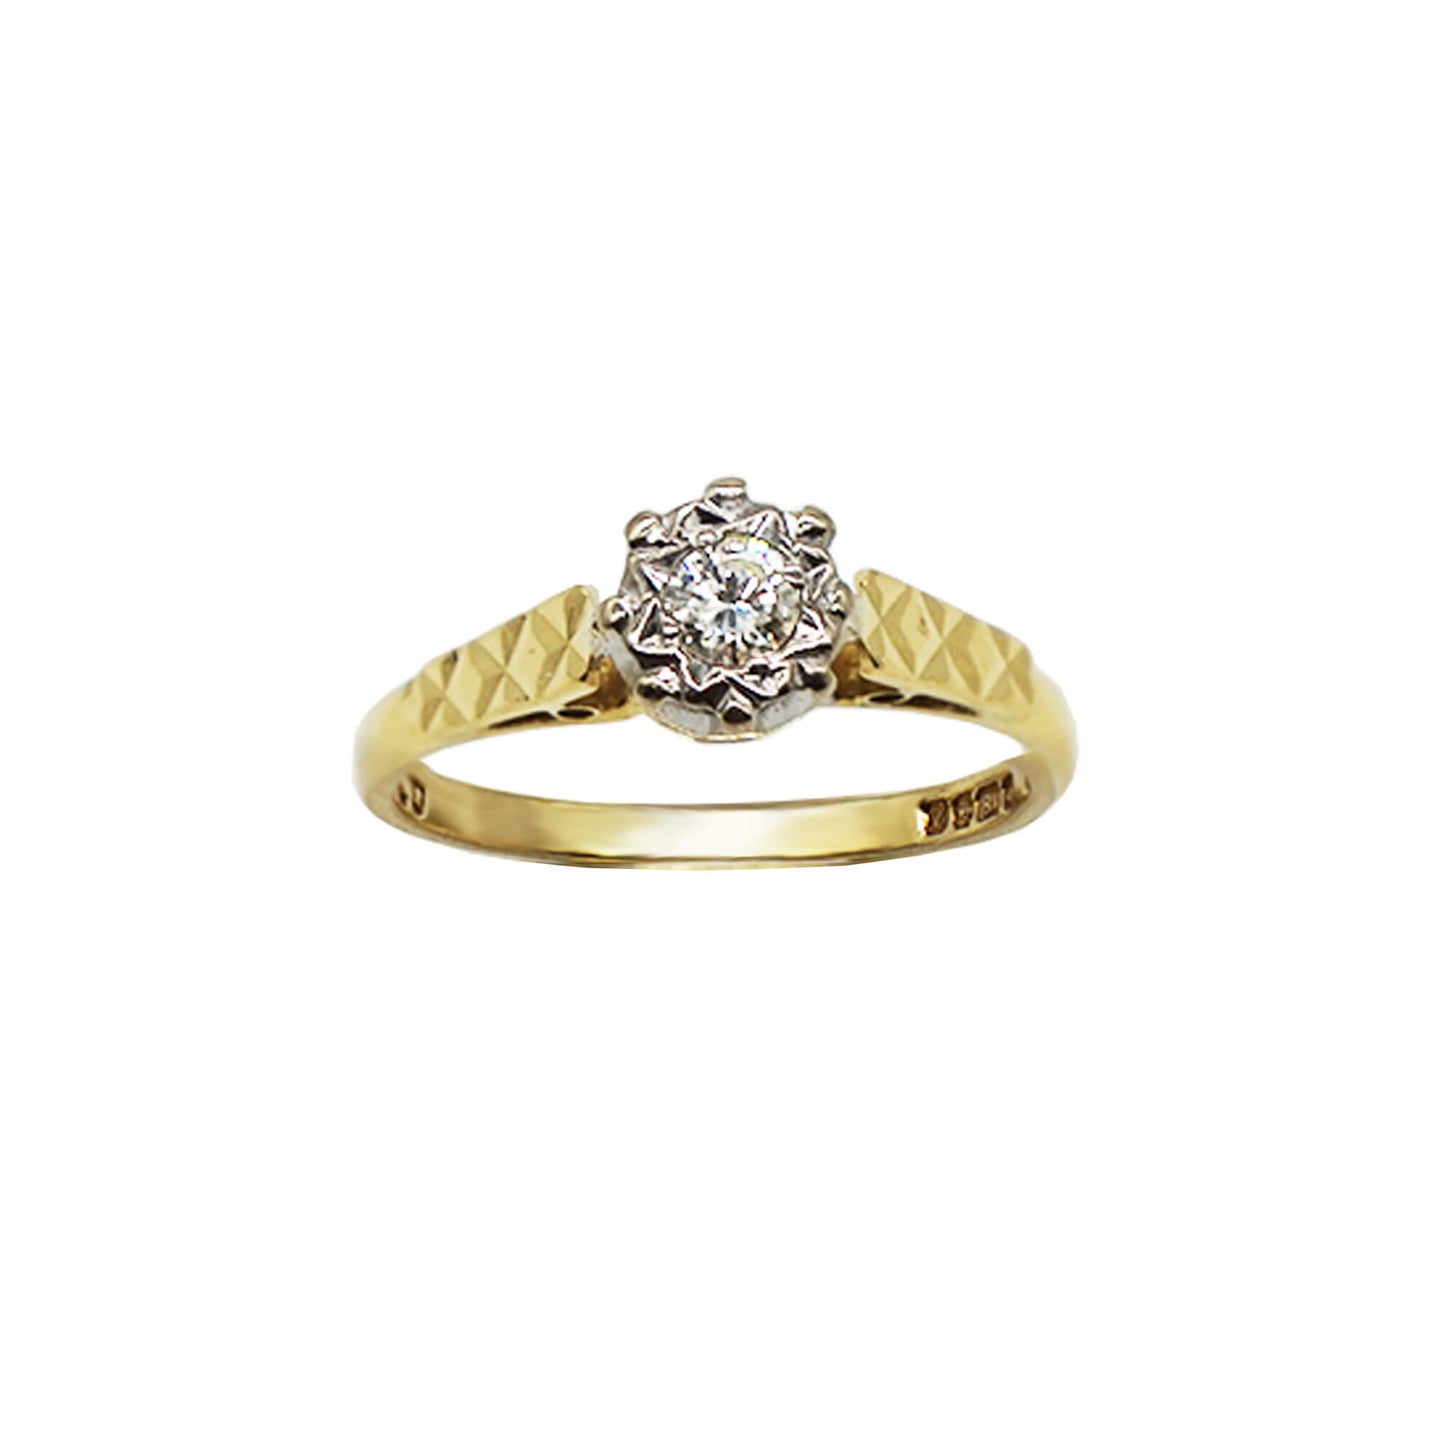 Vintage 18K Gold ring, with Diamond Solitaire stone cset in a flower design. The band is textured/ cross. Hallmarks can be seen on the inner band. Background is white.